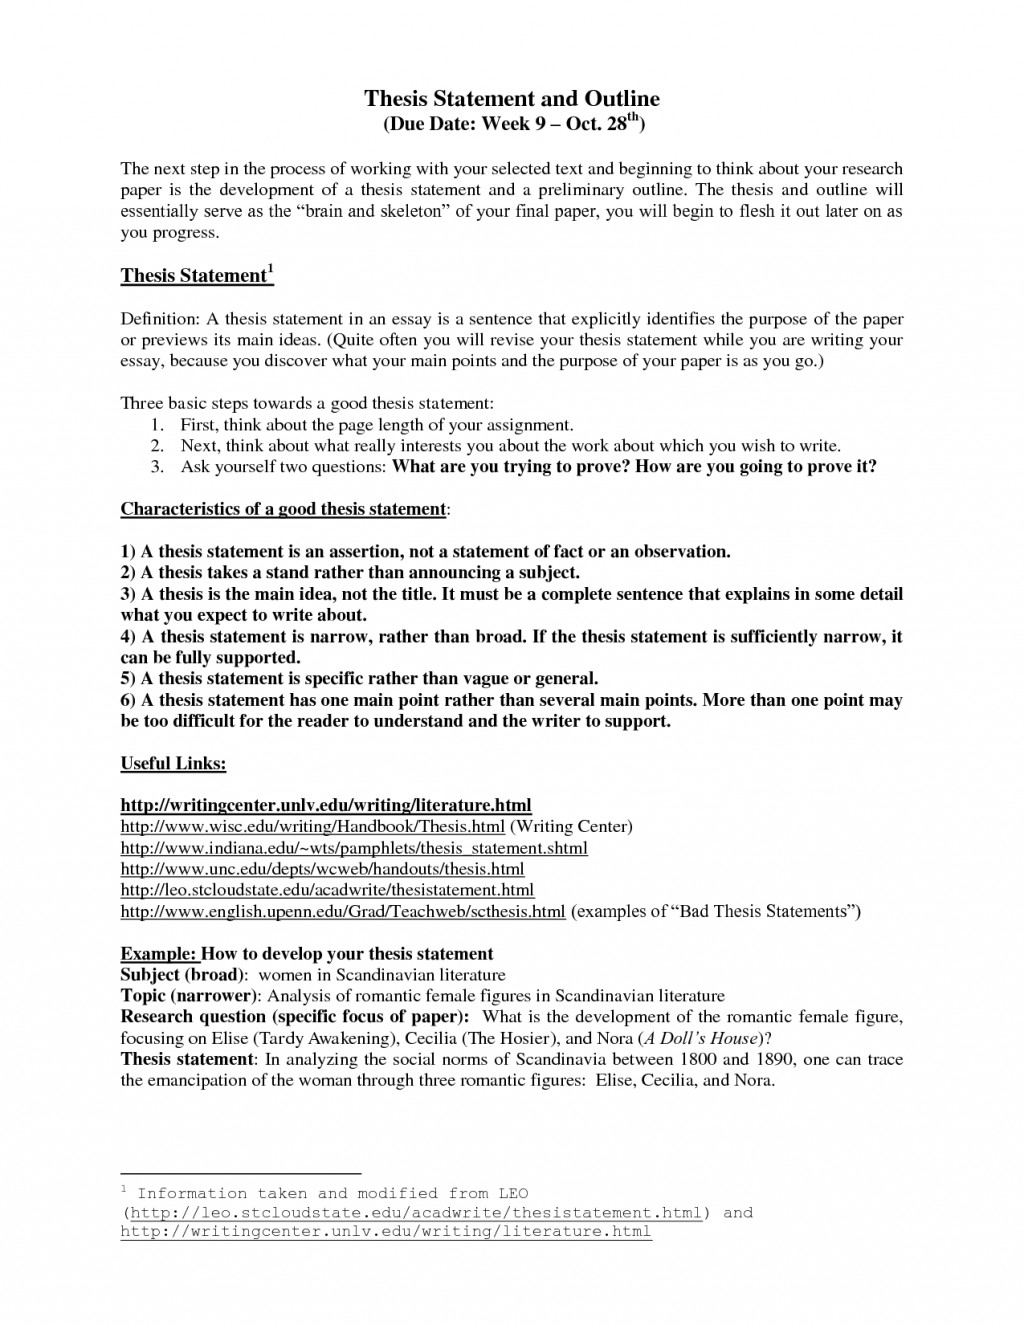 008 Research Paper Thesis Statement And Outline Template Wx8nmdez Example Ap Remarkable Papers Large